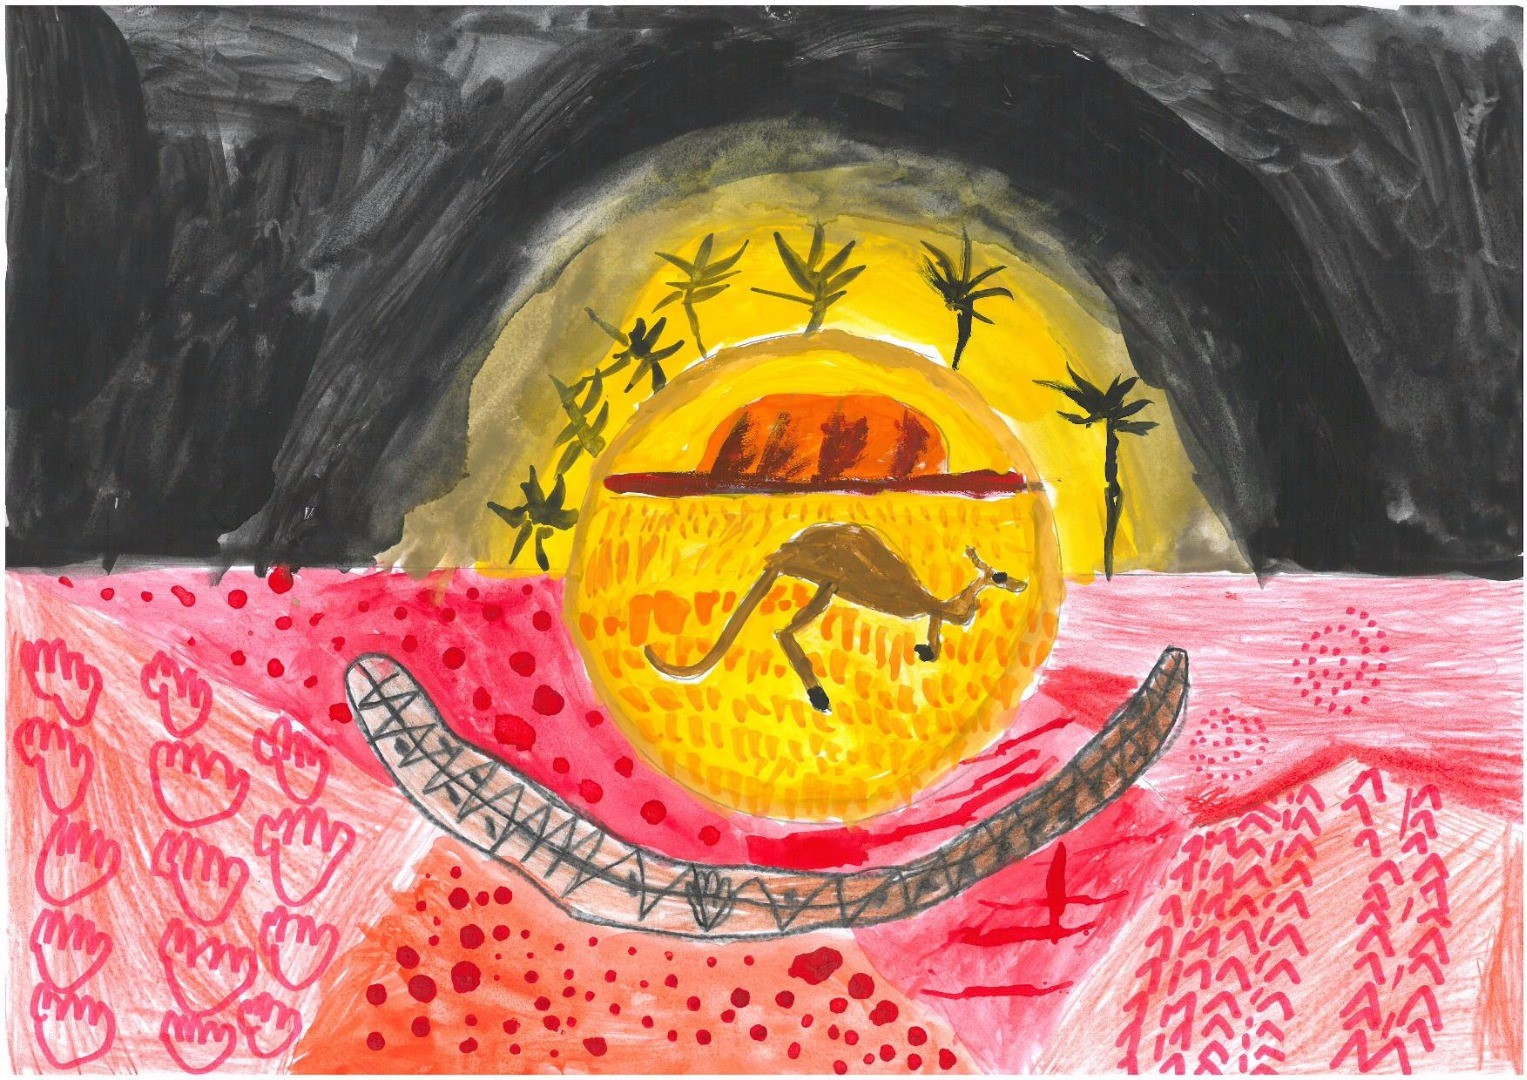 2017 Celebrate Australia Primary School Art Competition First Place Section One: Aboriginal Flag by Ashton Little